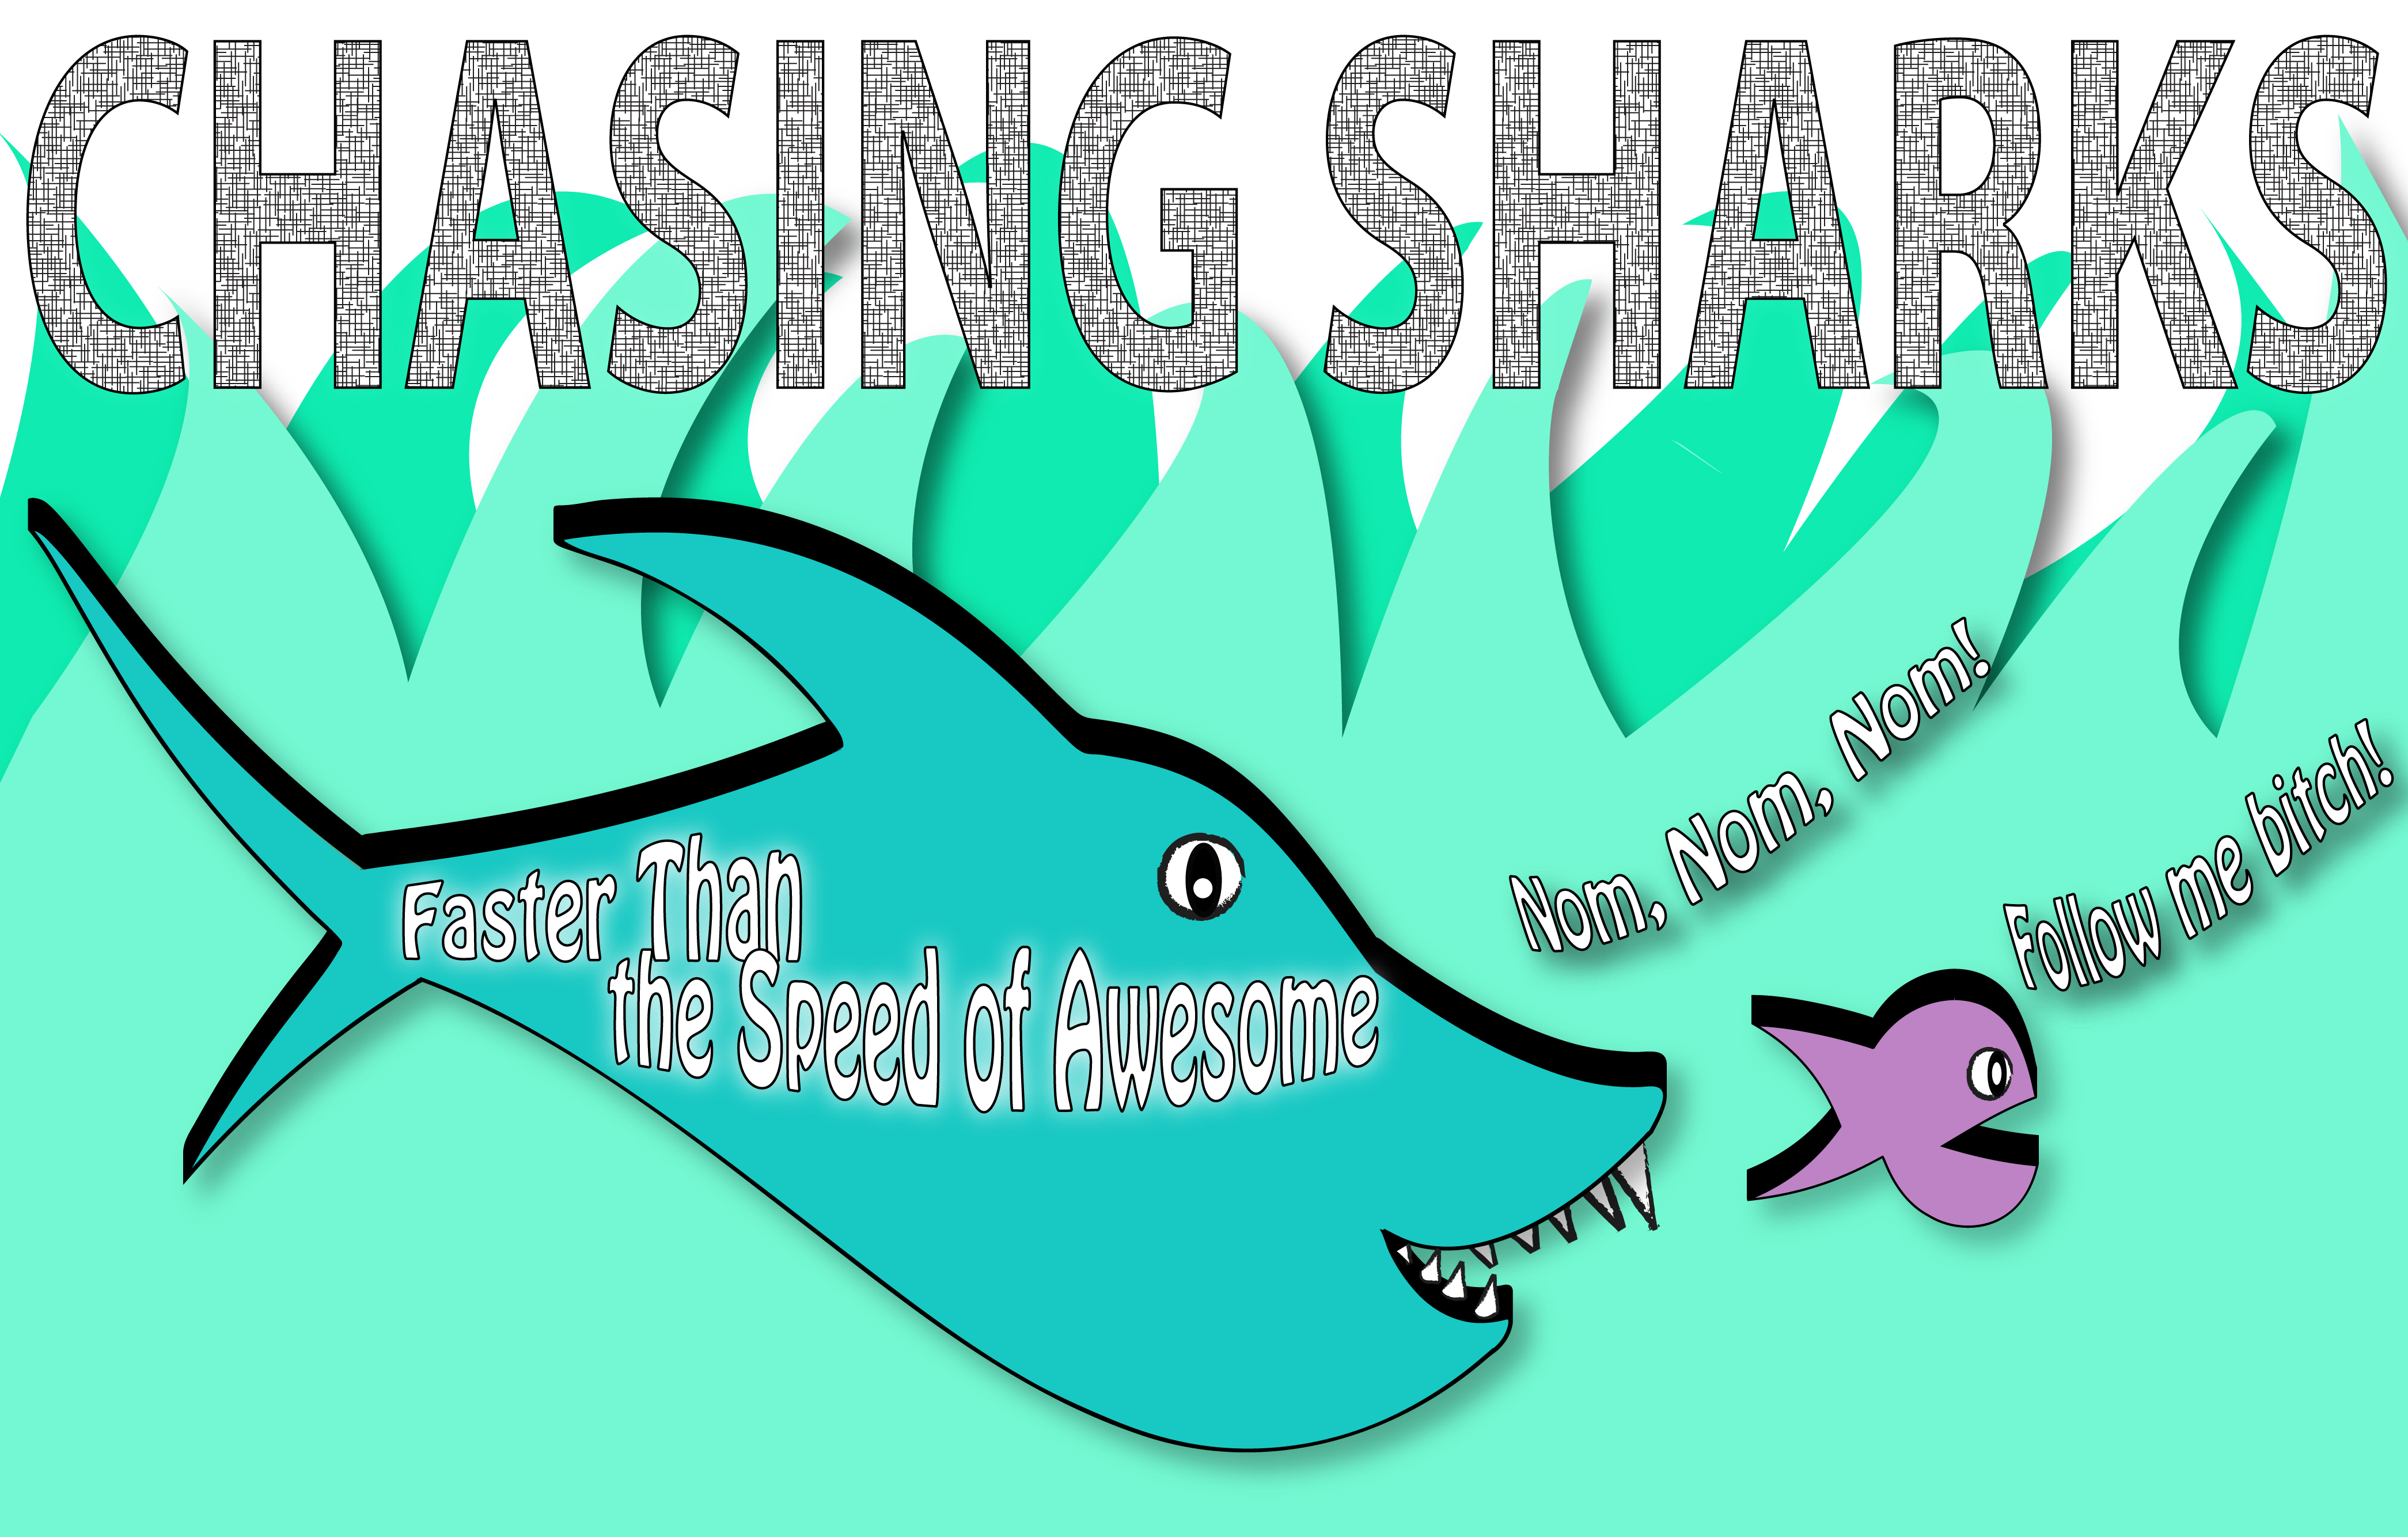 Chasing Sharks: Faster Than the Speed of Awesome